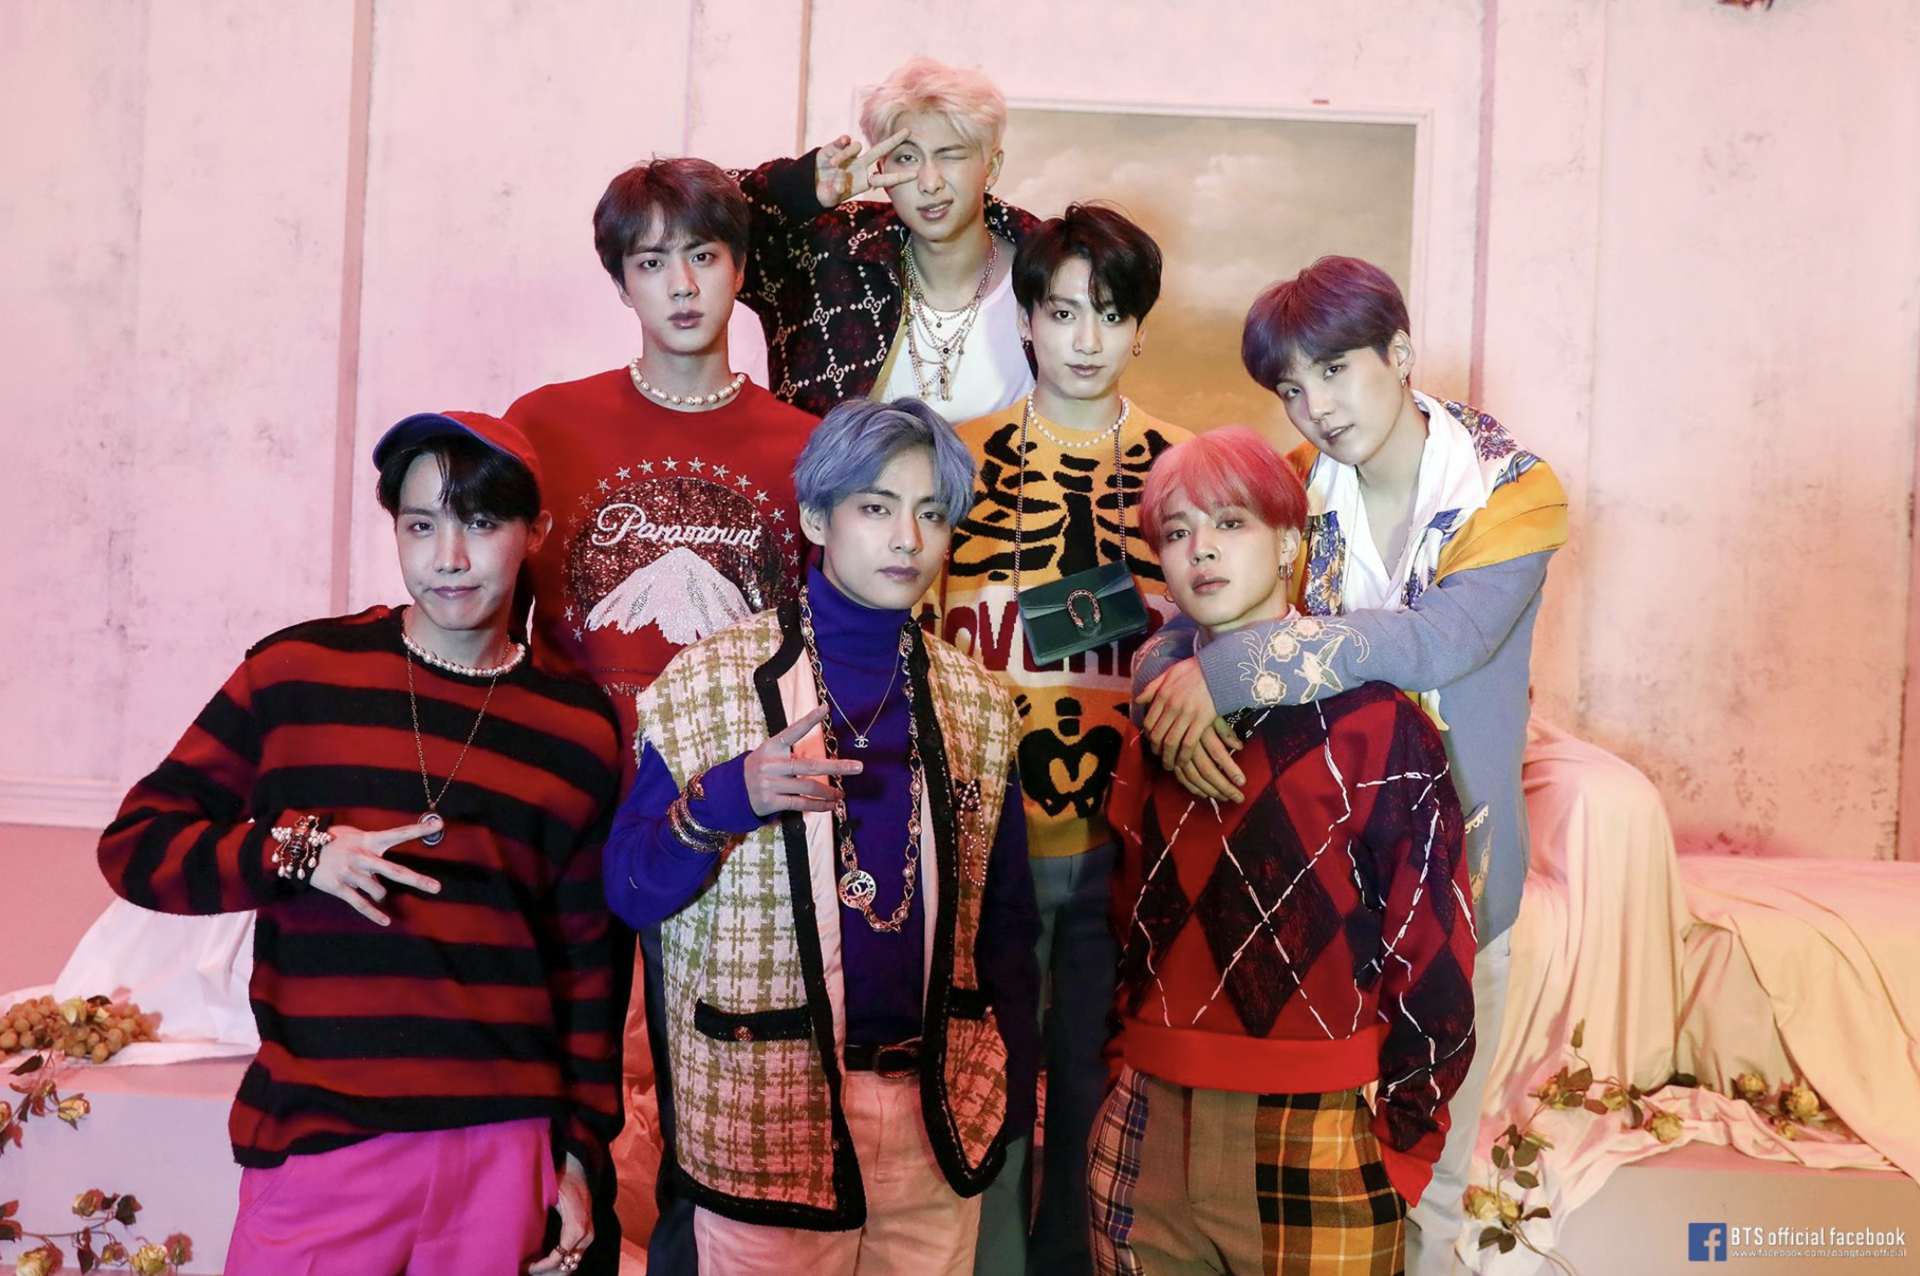 Bts Explores Self Image The Cost Of Fame And Acceptance In Map Of